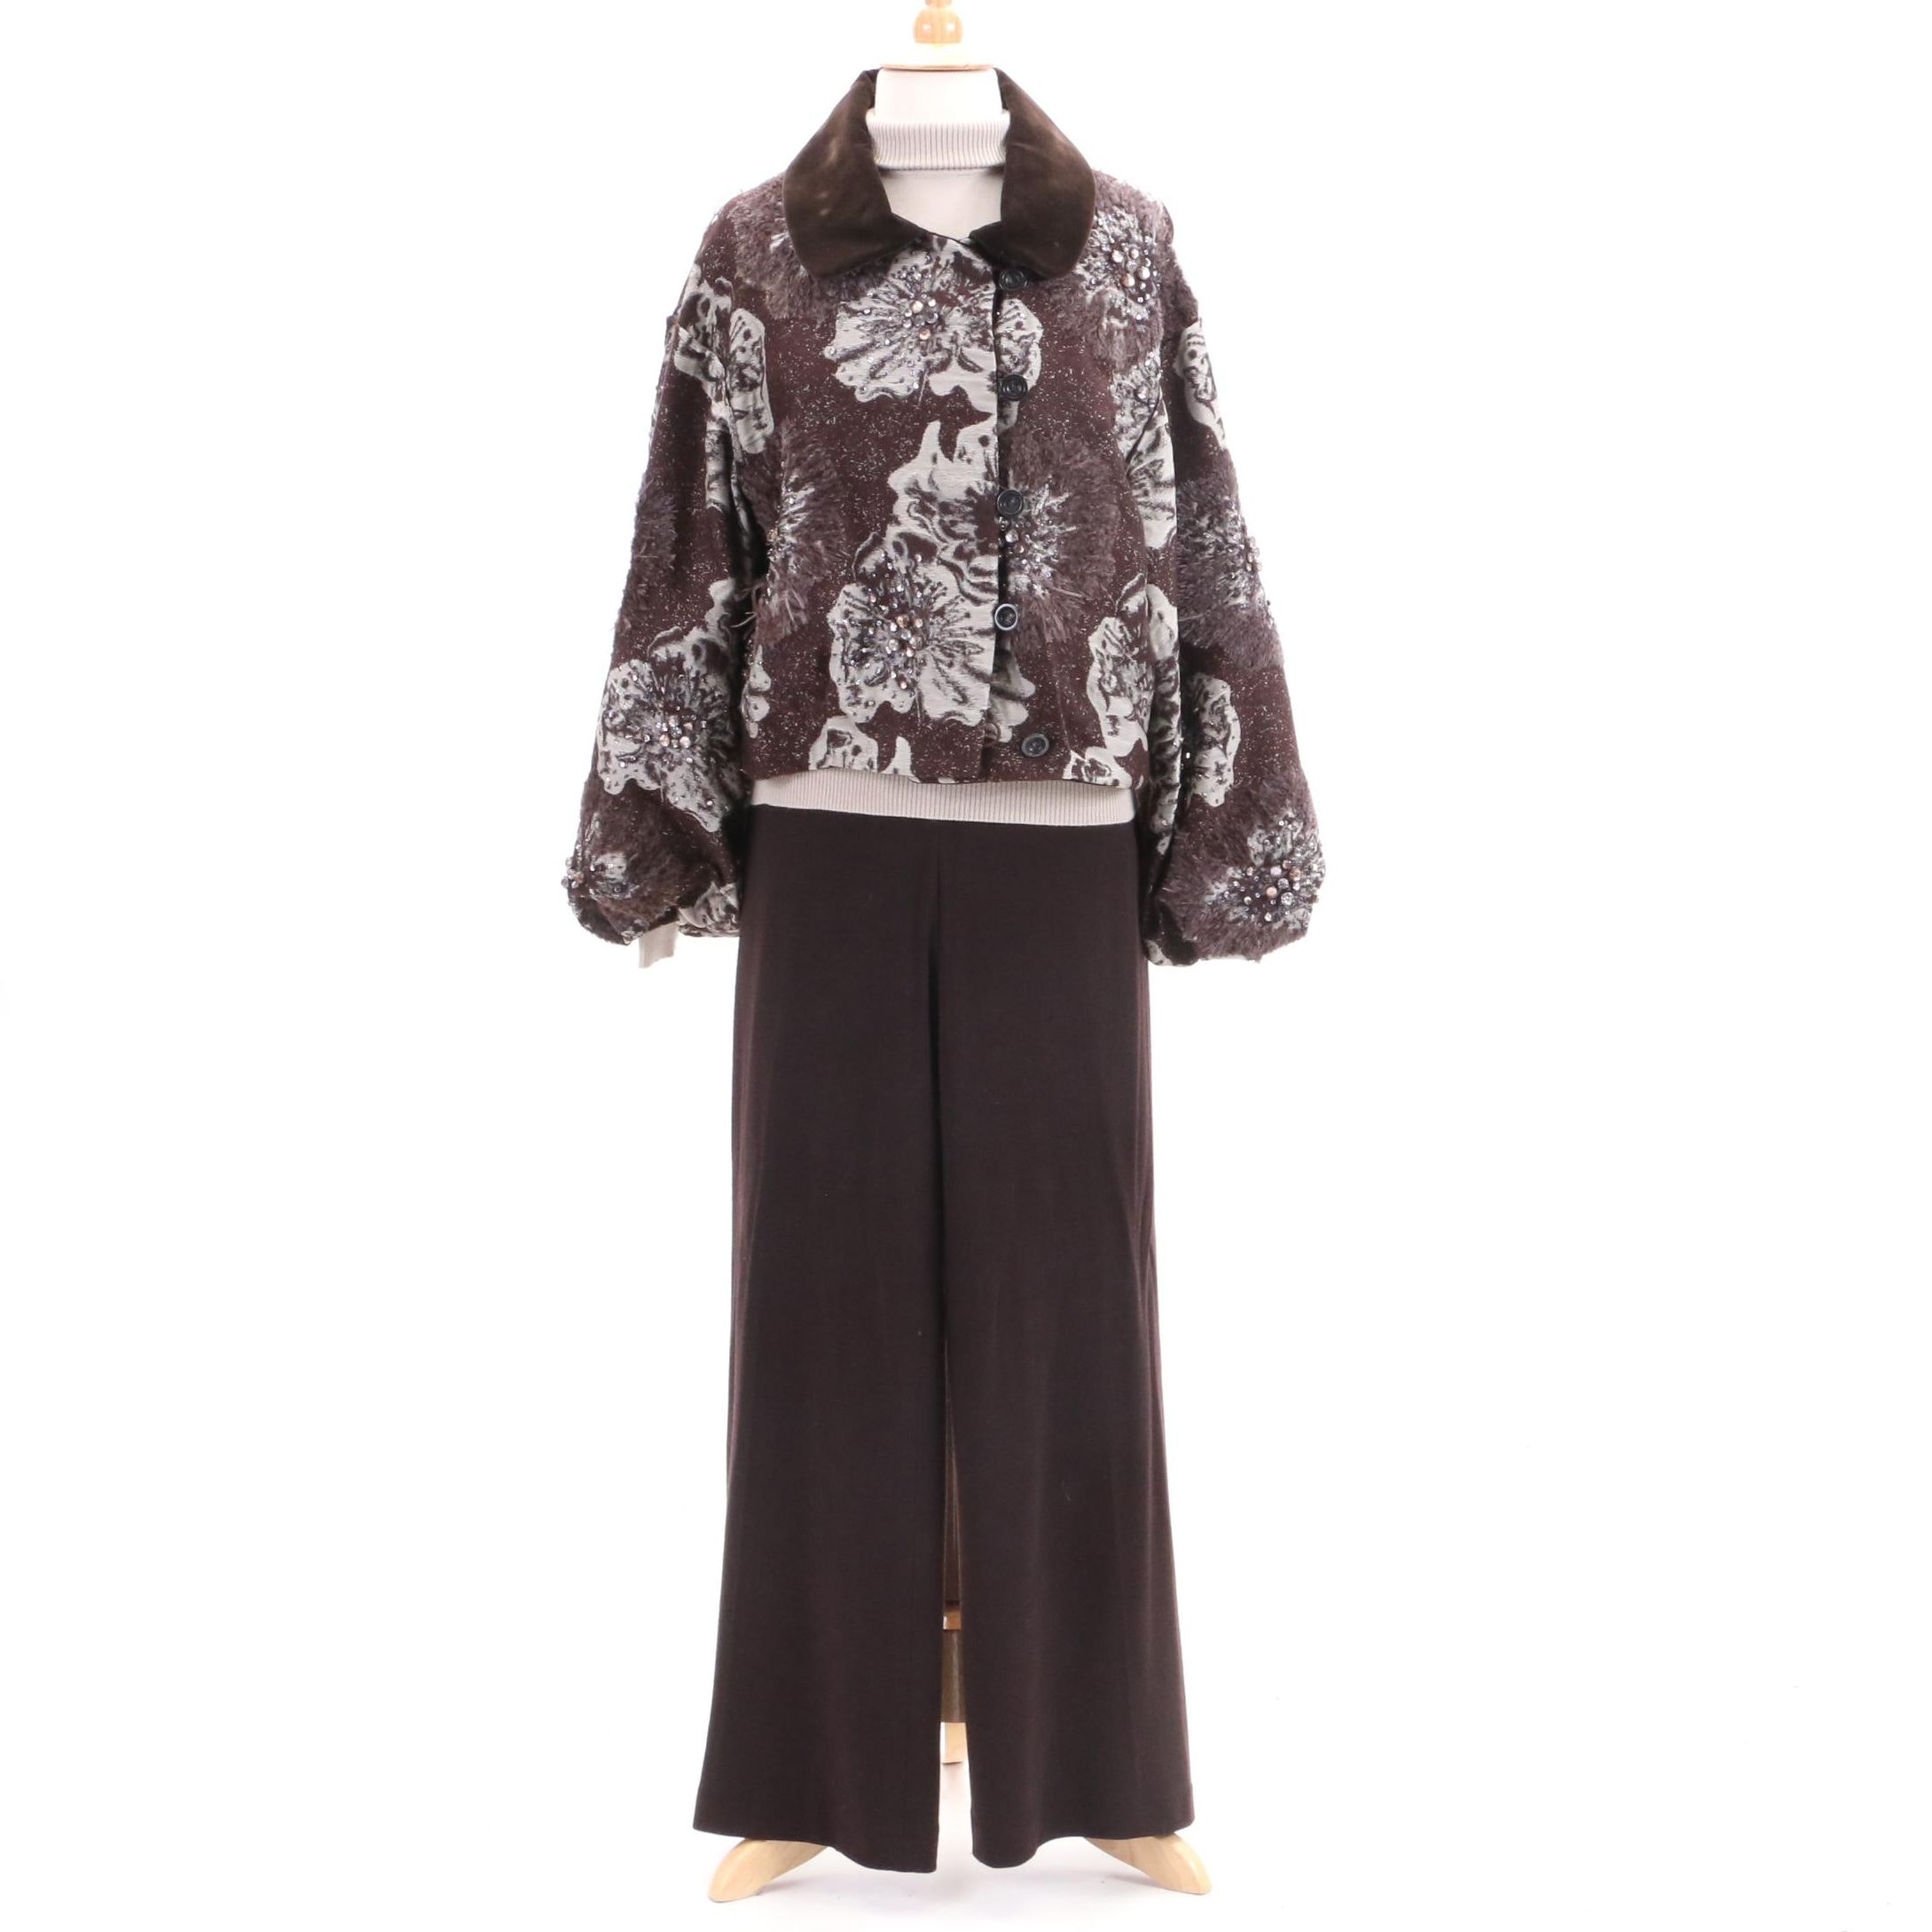 Carolina Herrera Embellished Jacket and Other Clothing Separates